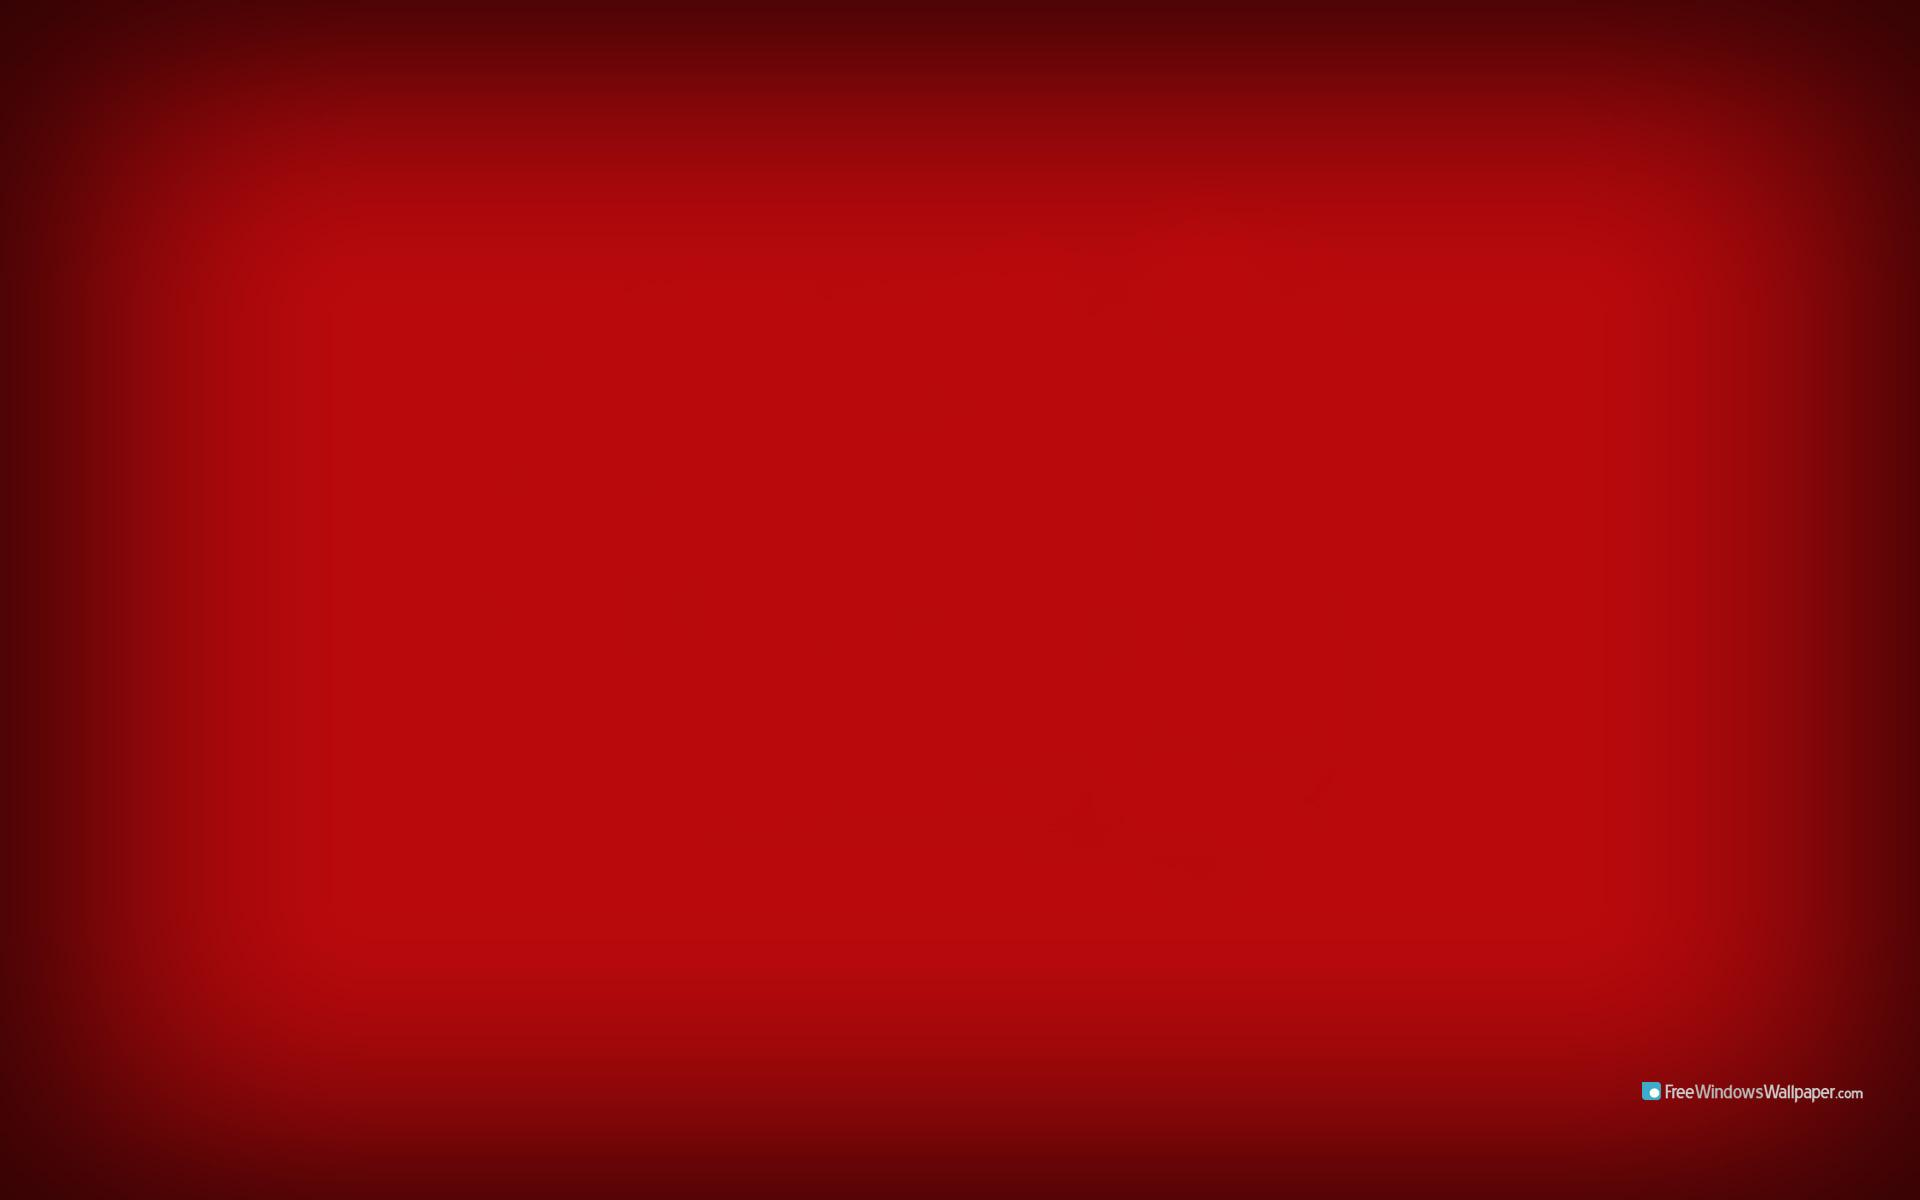 1920x1200 Red Computer Wallpaper Solid Red Wallpaper 1920x1200